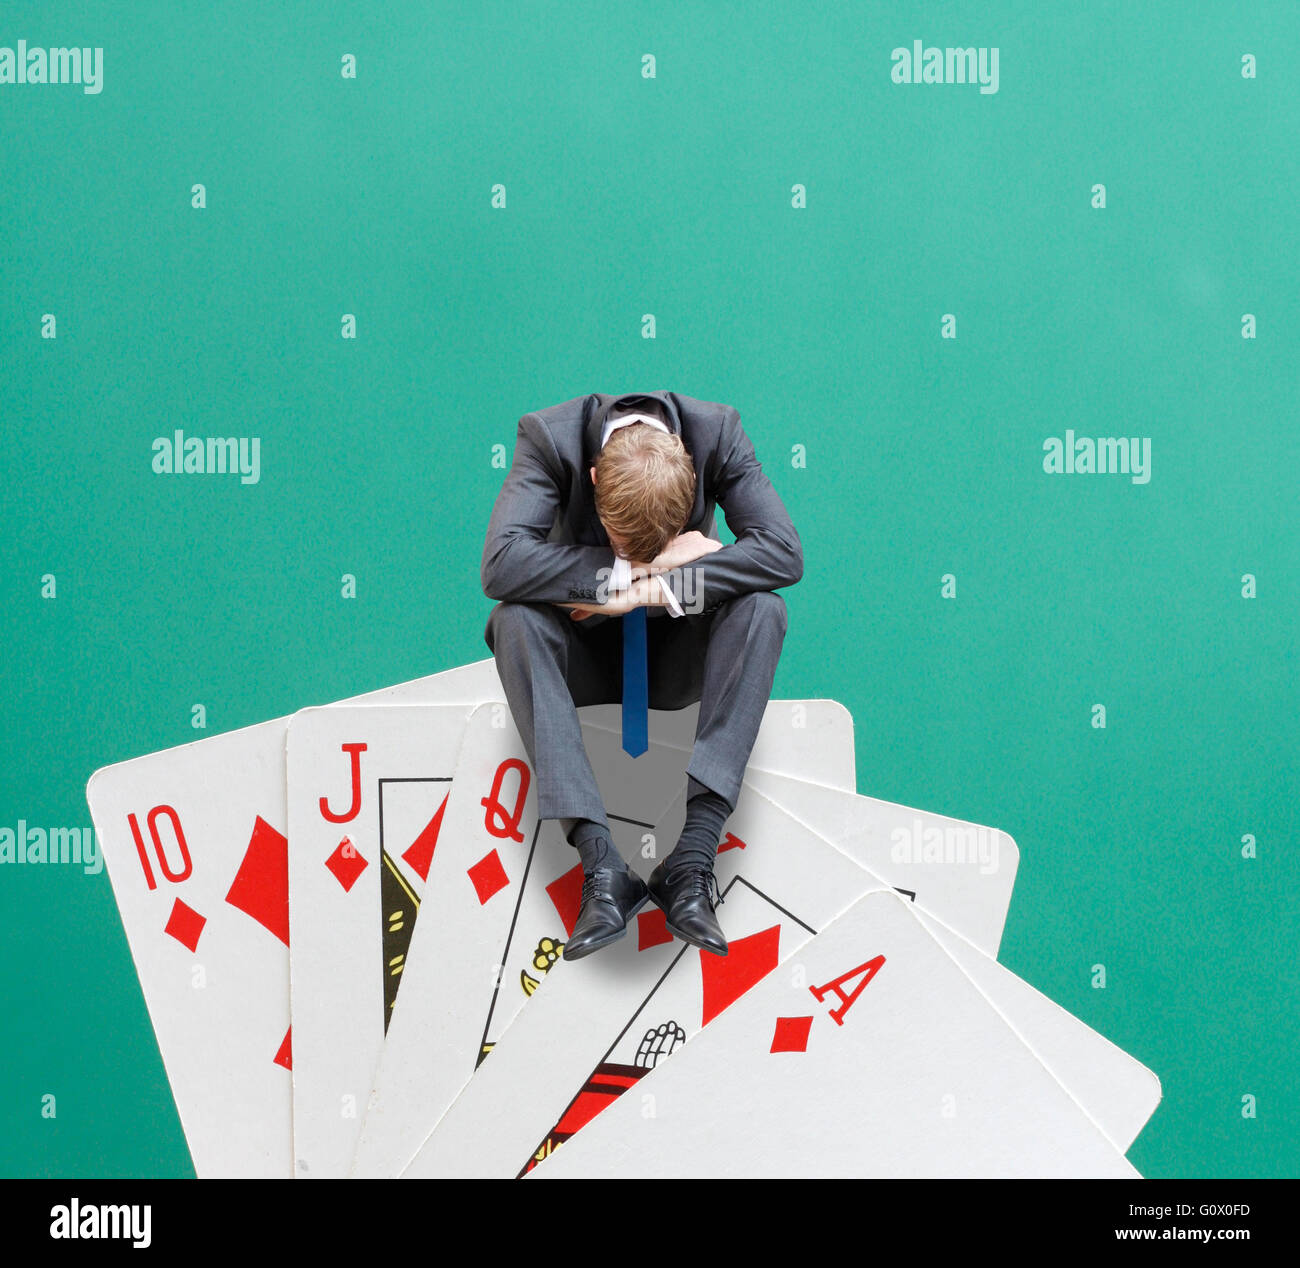 A gambler sitting on cards - Stock Image